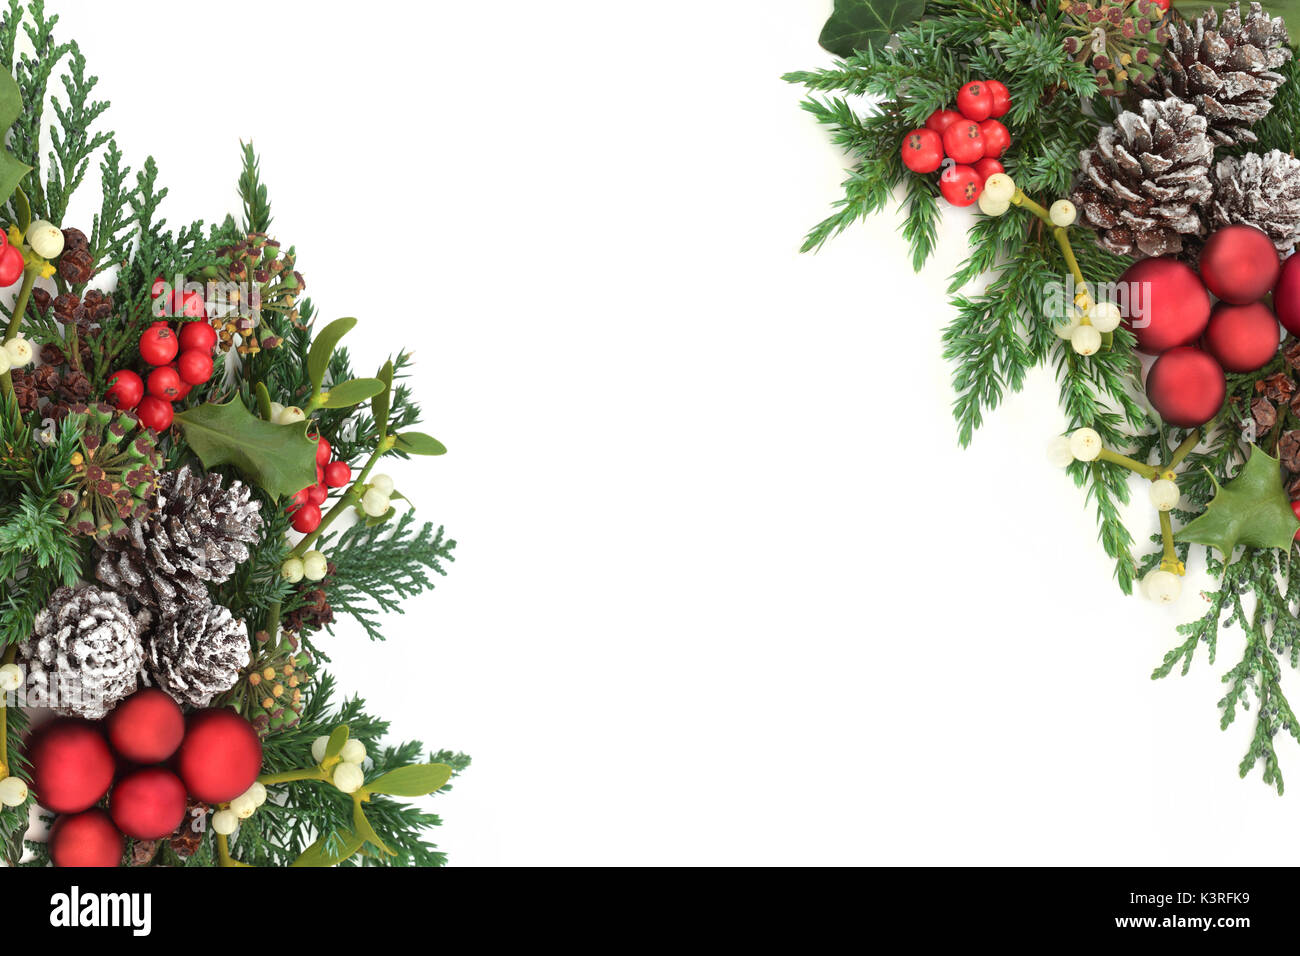 fca5d72d7ea2 Christmas decorative border with red bauble decorations, holly, ivy,  mistletoe, cedar and juniper leaf sprigs and pine cones on white background.